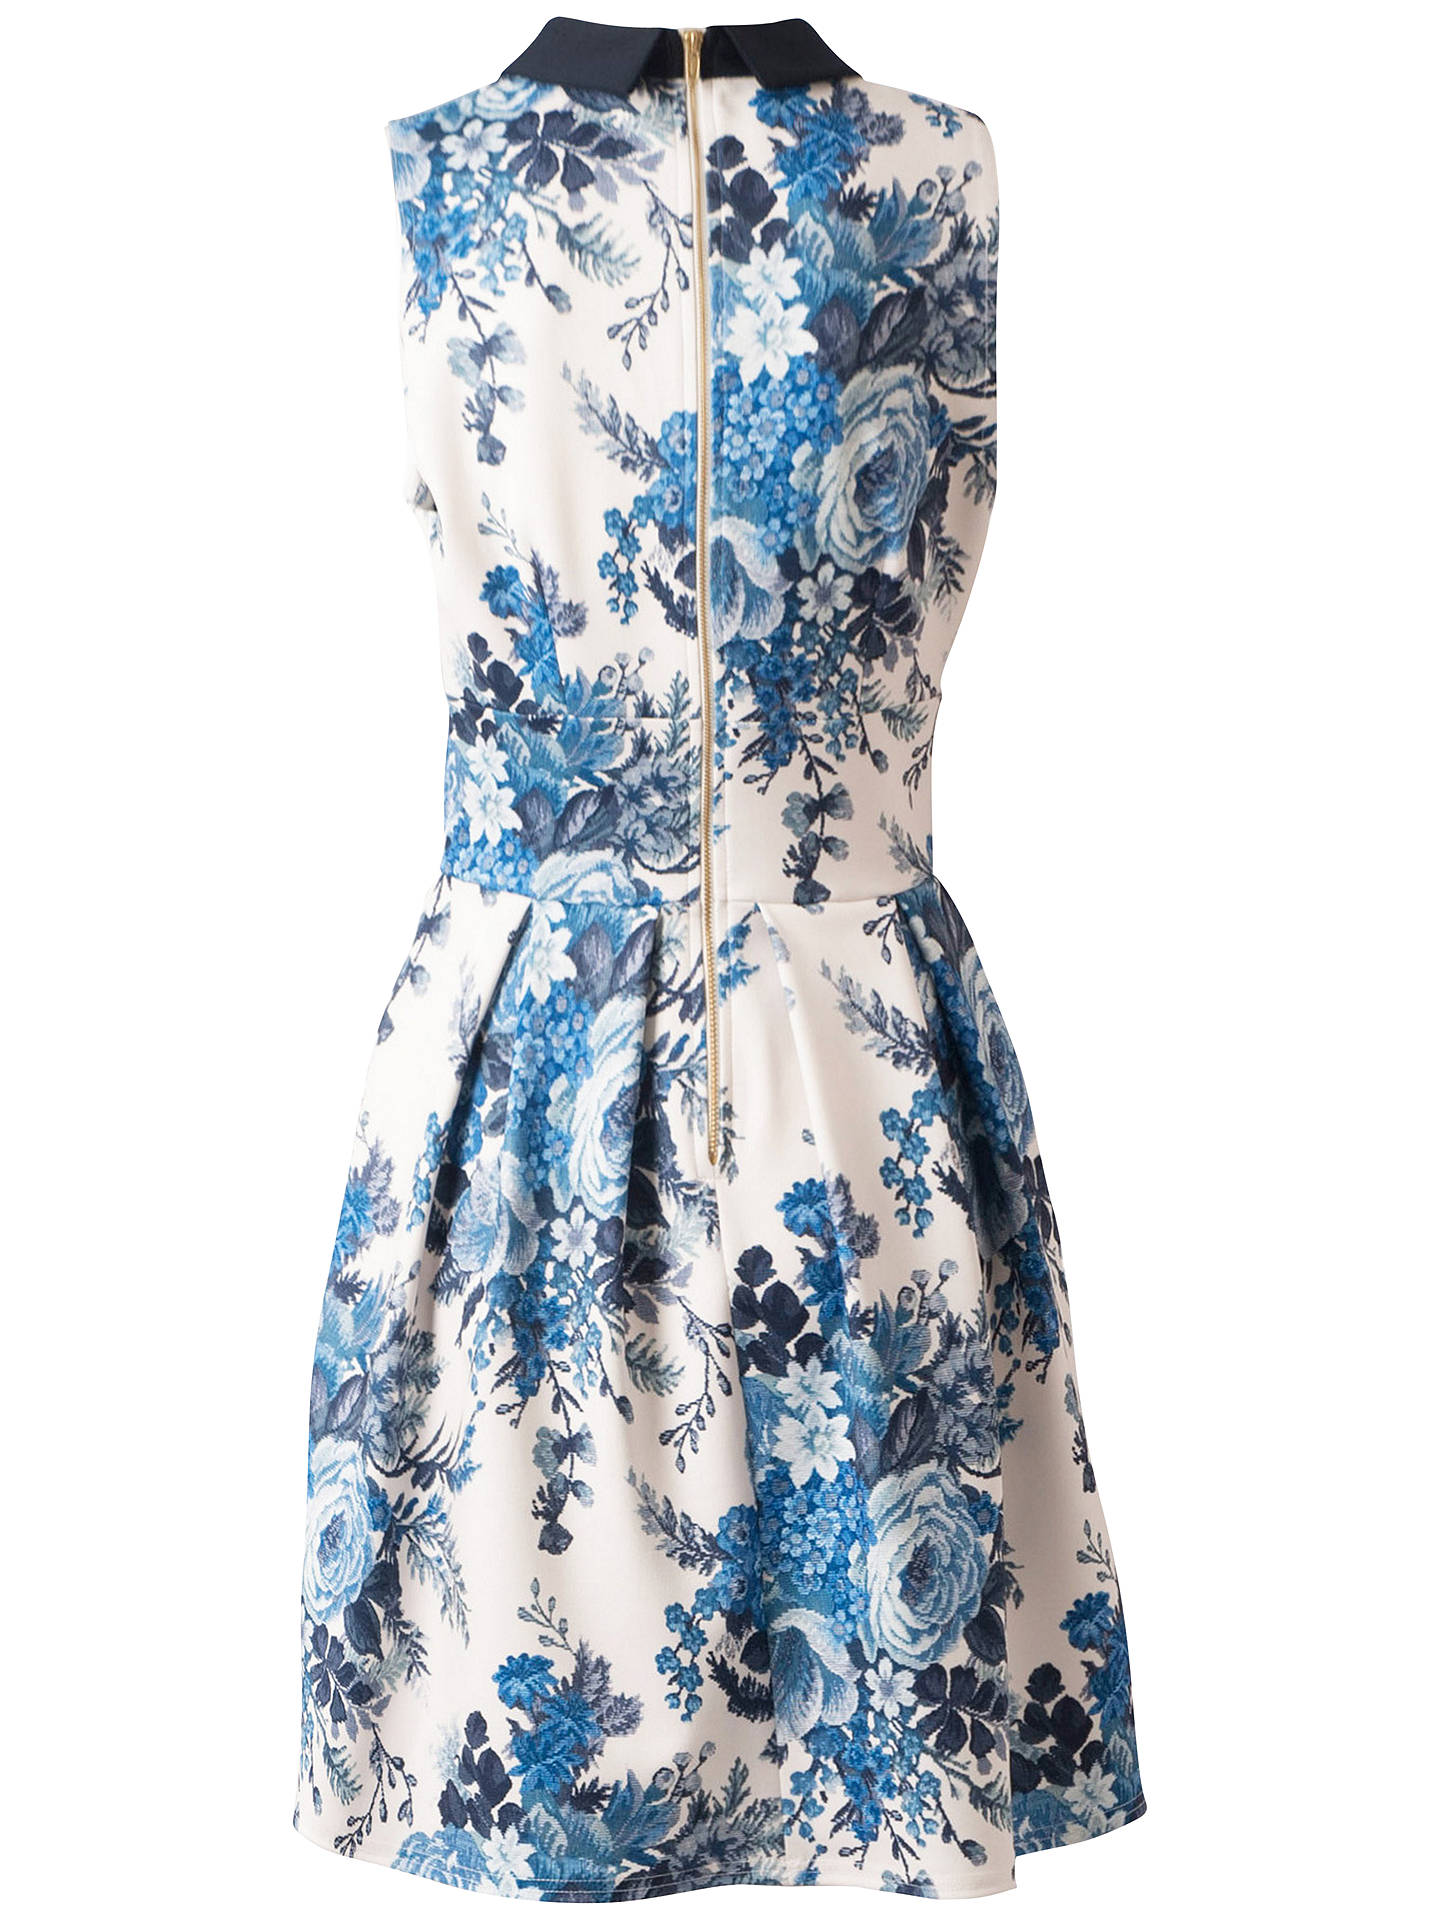 BuyCloset Tapestry Print Collar Dress, Blue Print, 8 Online at johnlewis.com